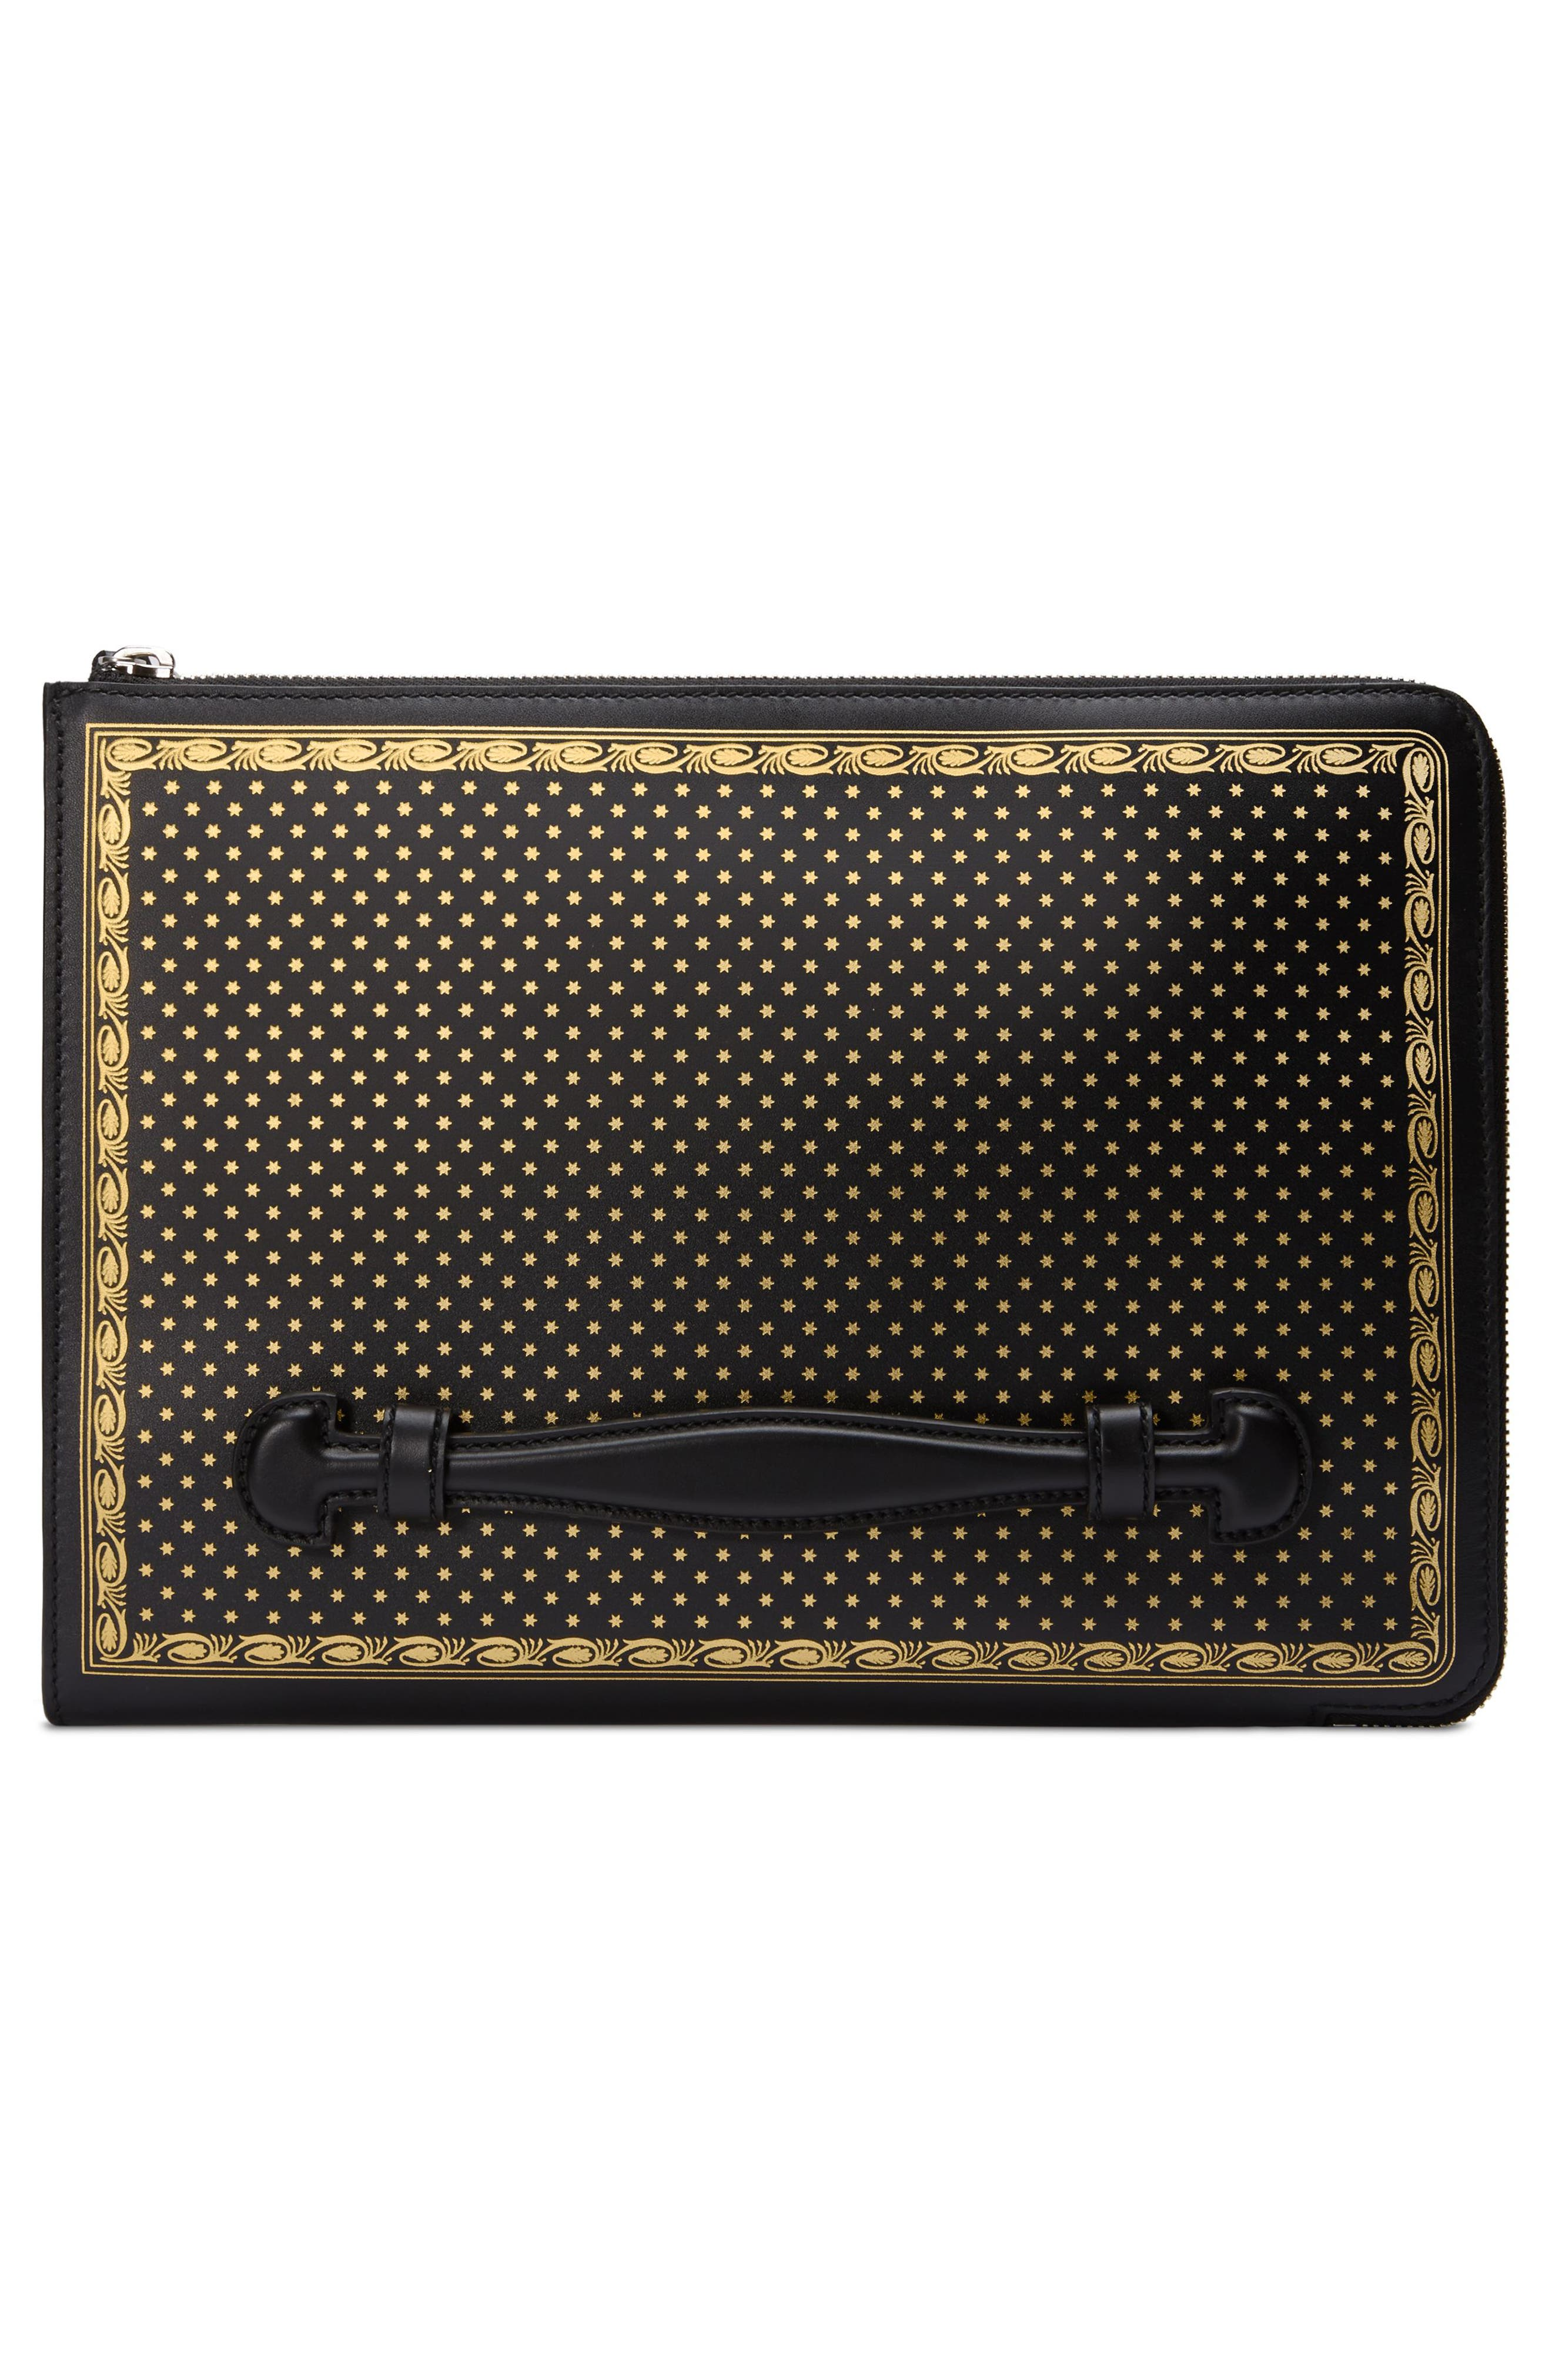 Guccy Logo Moon & Stars Leather Clutch,                             Alternate thumbnail 2, color,                             NERO ORO/ NERO